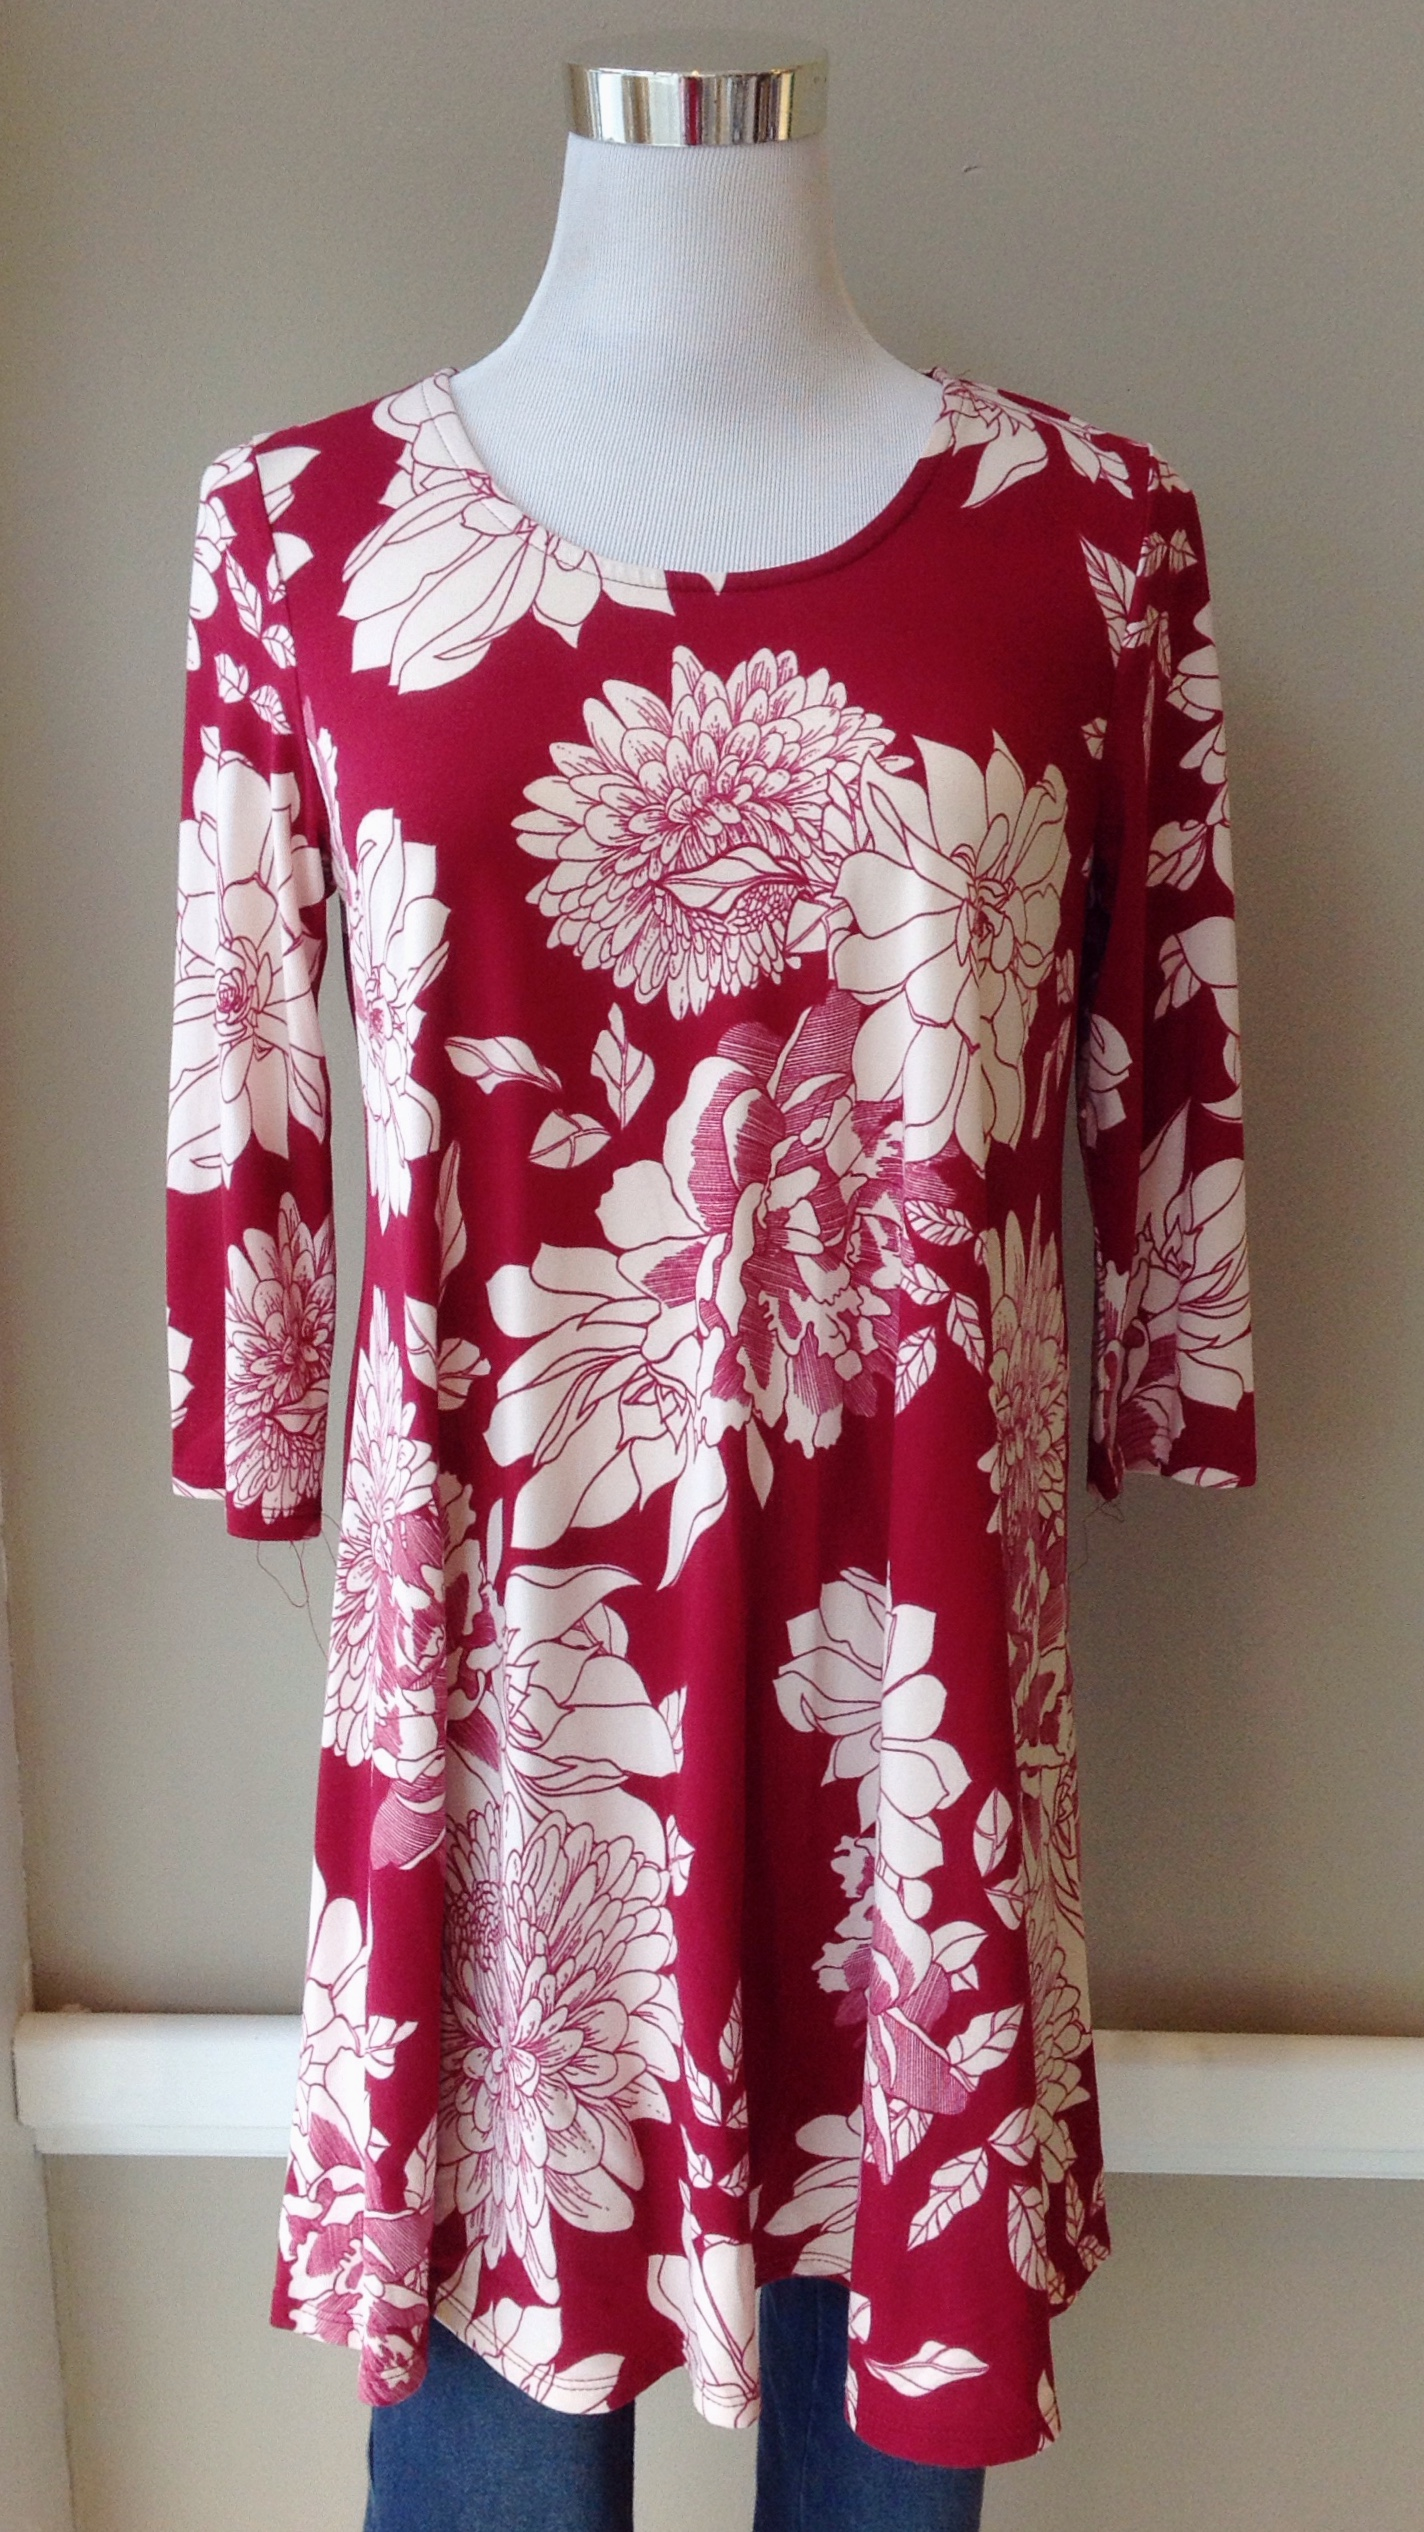 Floral swing tunic with 3/4 sleeves in burgundy/ivory,  $32